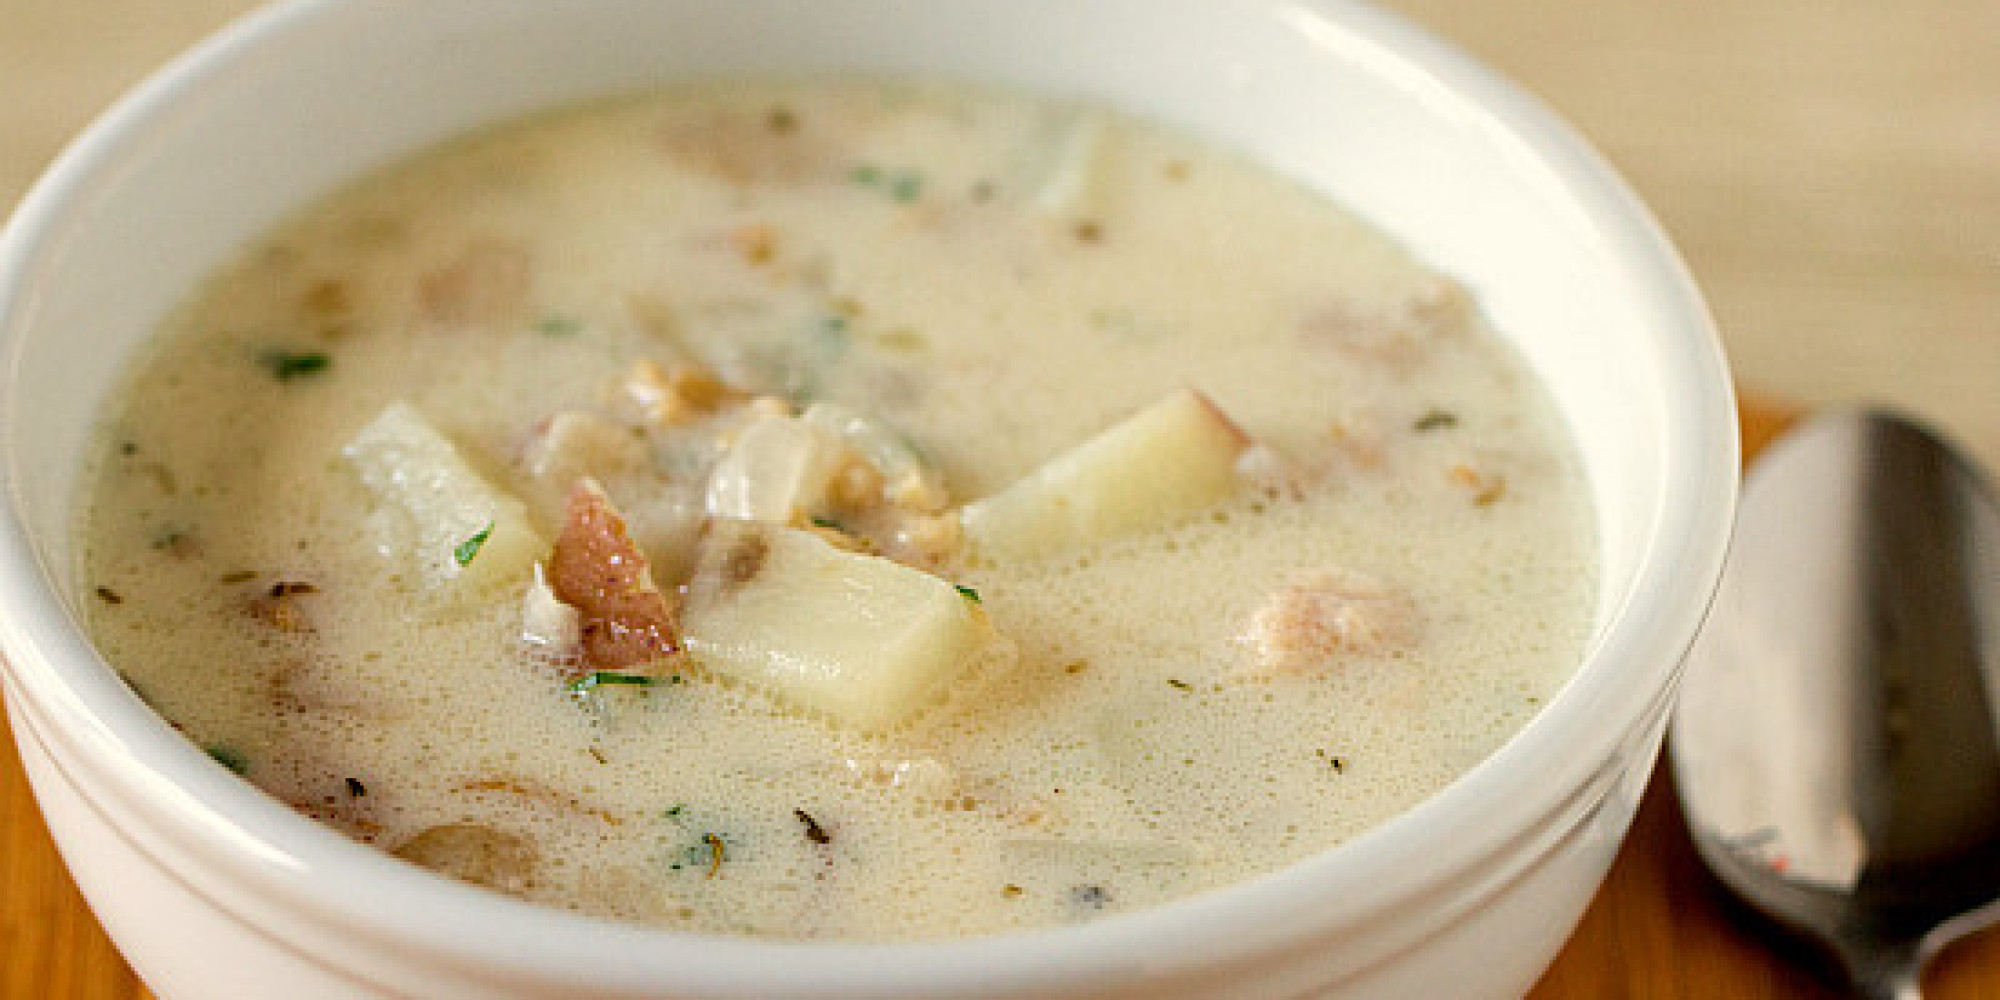 Clam Chowder Recipes For Every Kind Of Chowder Fan There Is | HuffPost